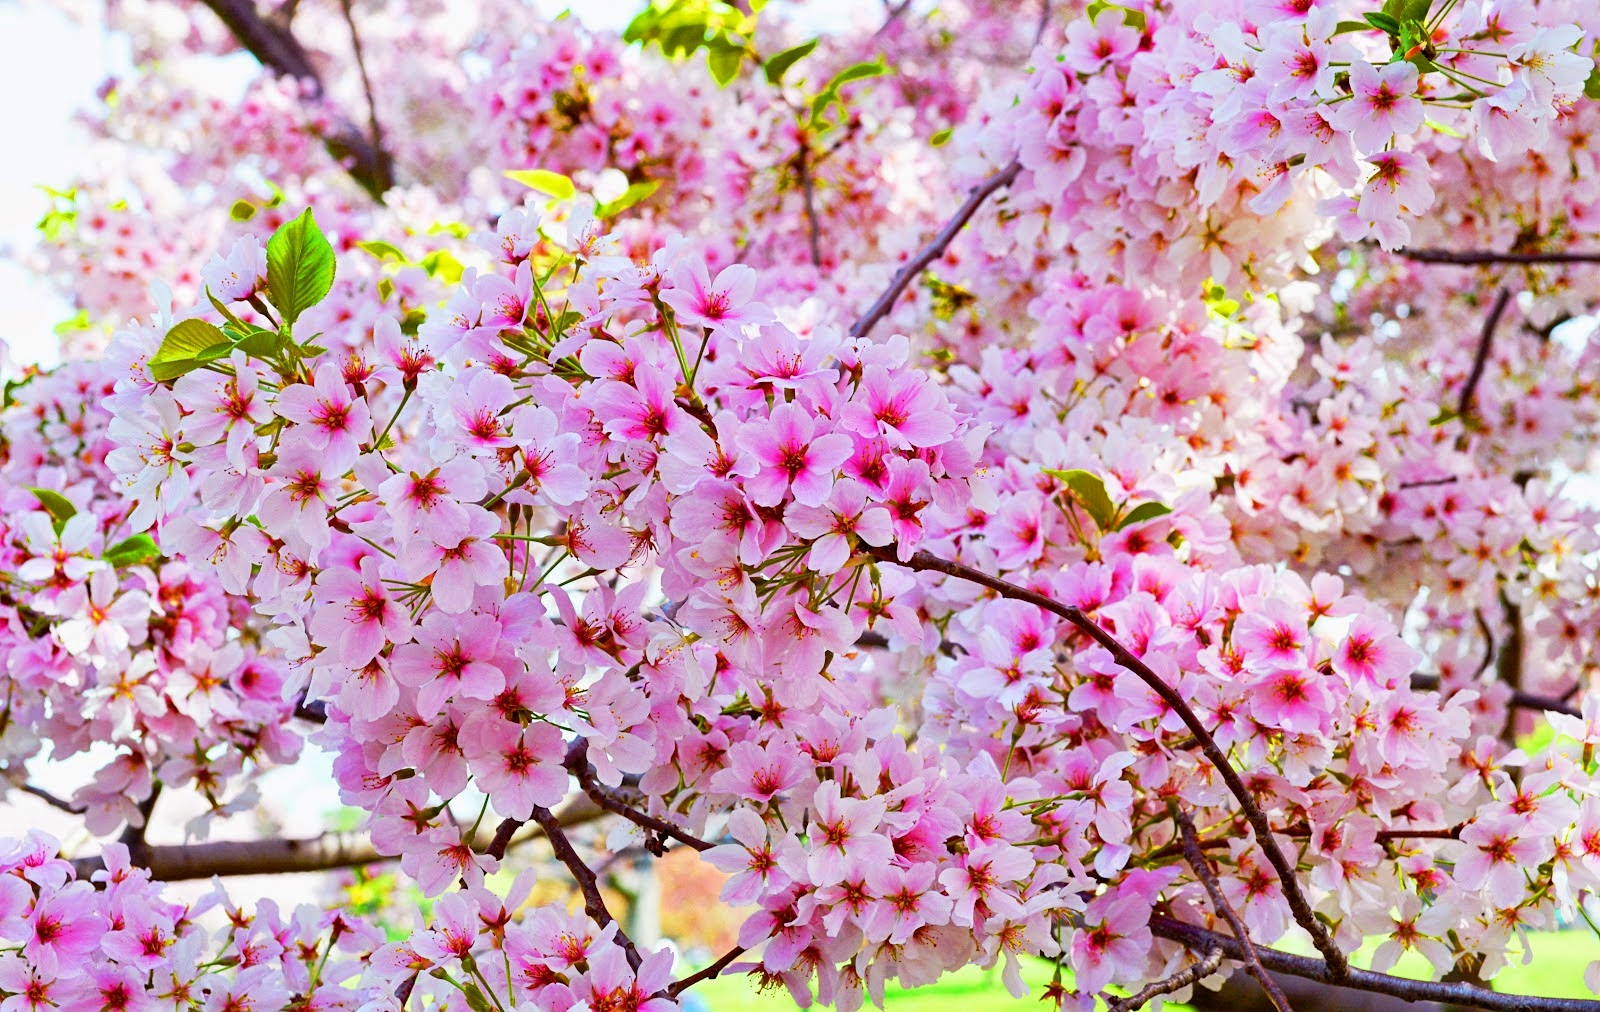 Gambar Wallpaper Bunga Sakura Jepang A1 Wallpaperz For You